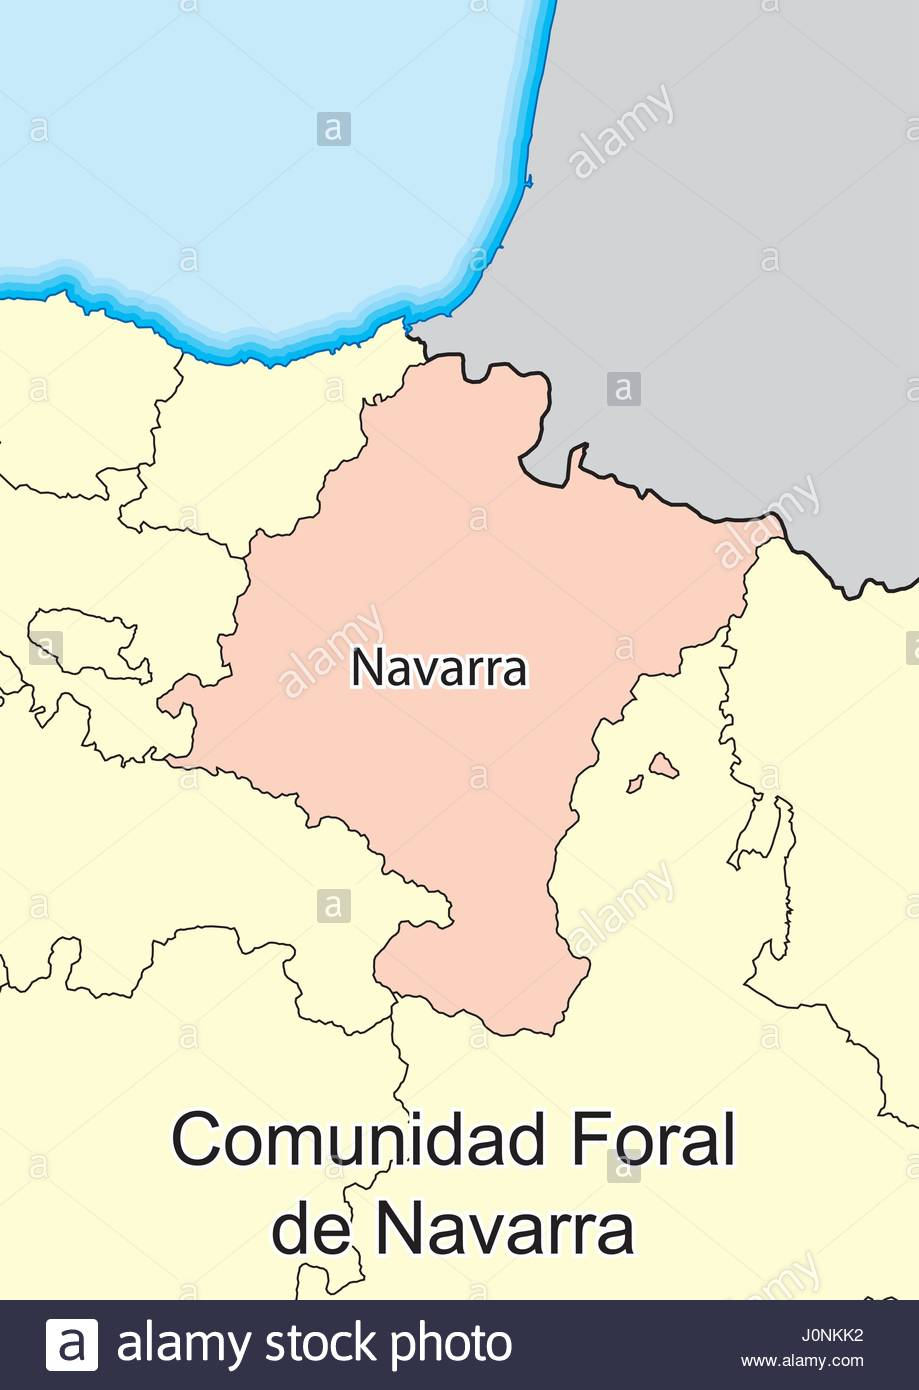 Map Of Spain Navarra.Vector Map Of Chartered Community Of Navarre Comunidad Foral De